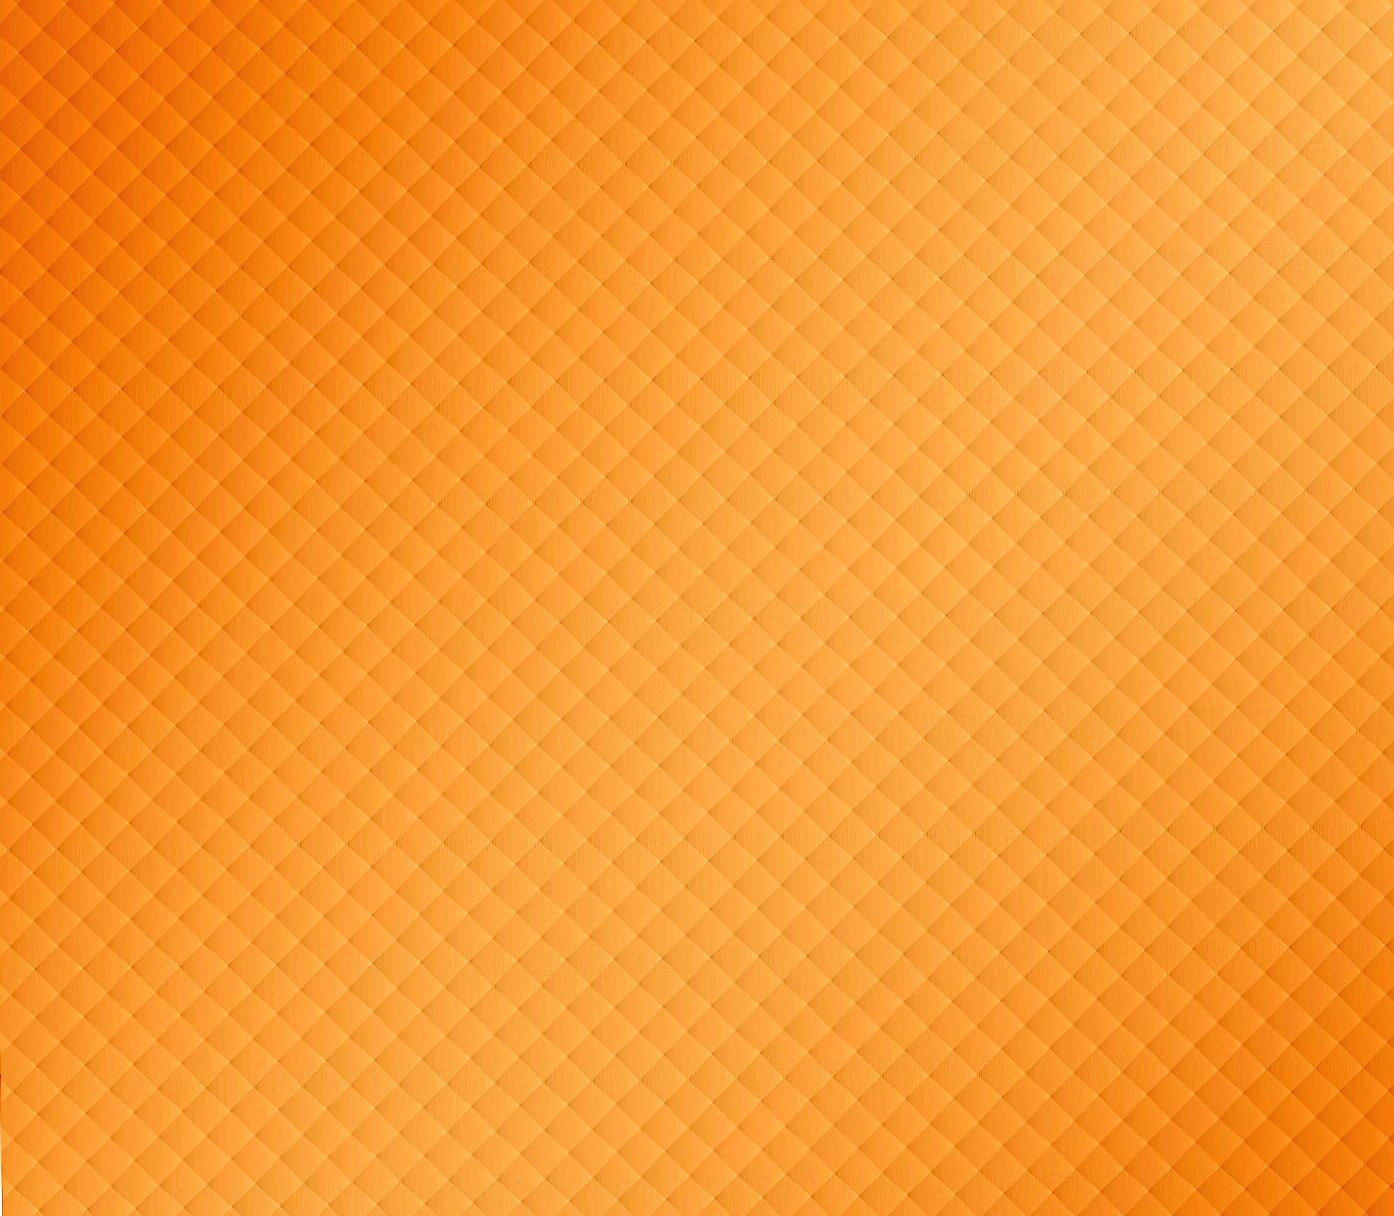 S8 Orange Dream wallpapers HD quality